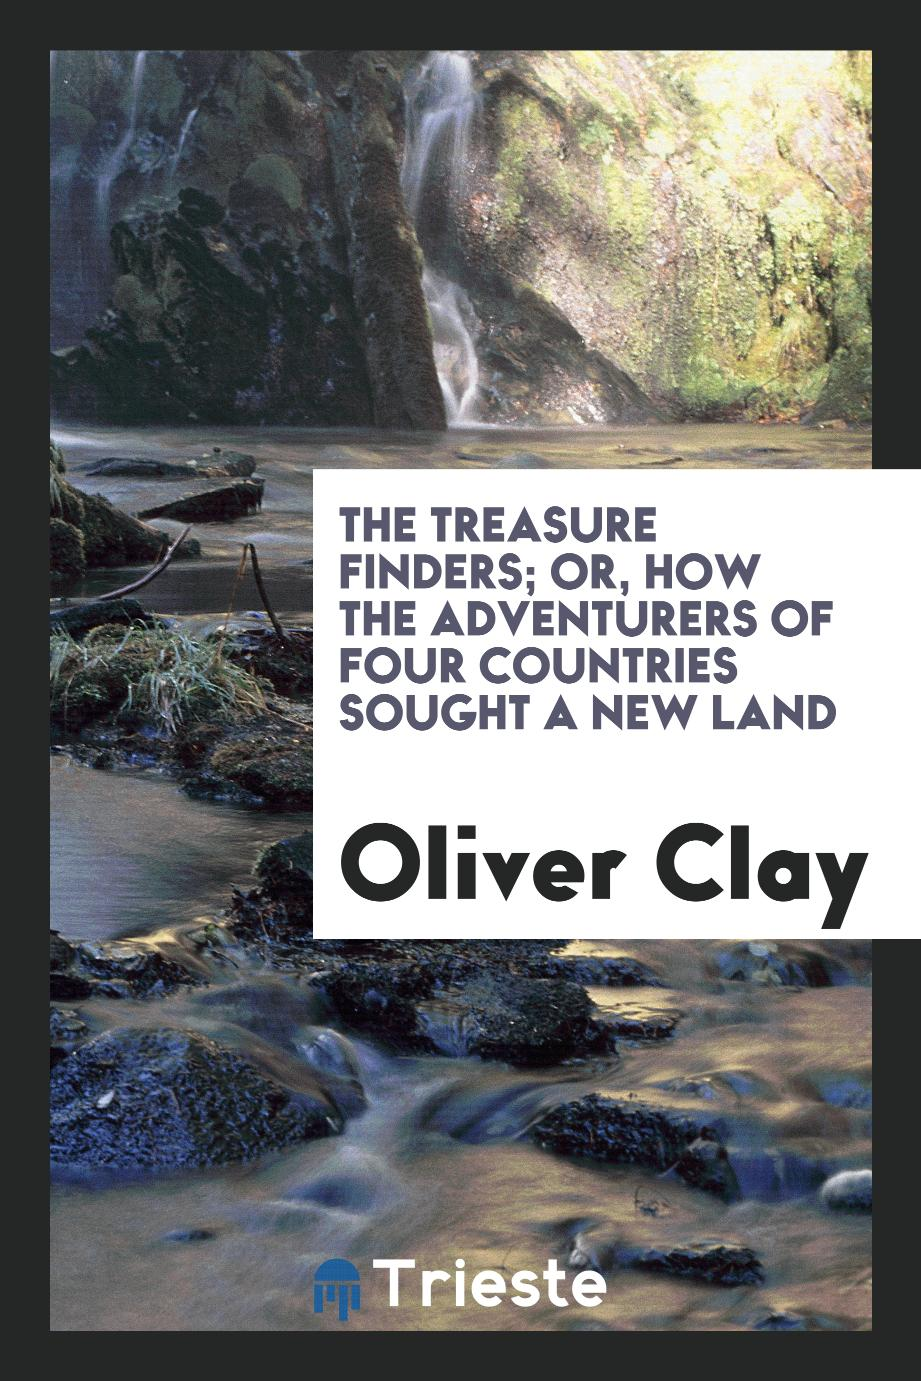 The treasure finders; or, How the adventurers of four countries sought a new land